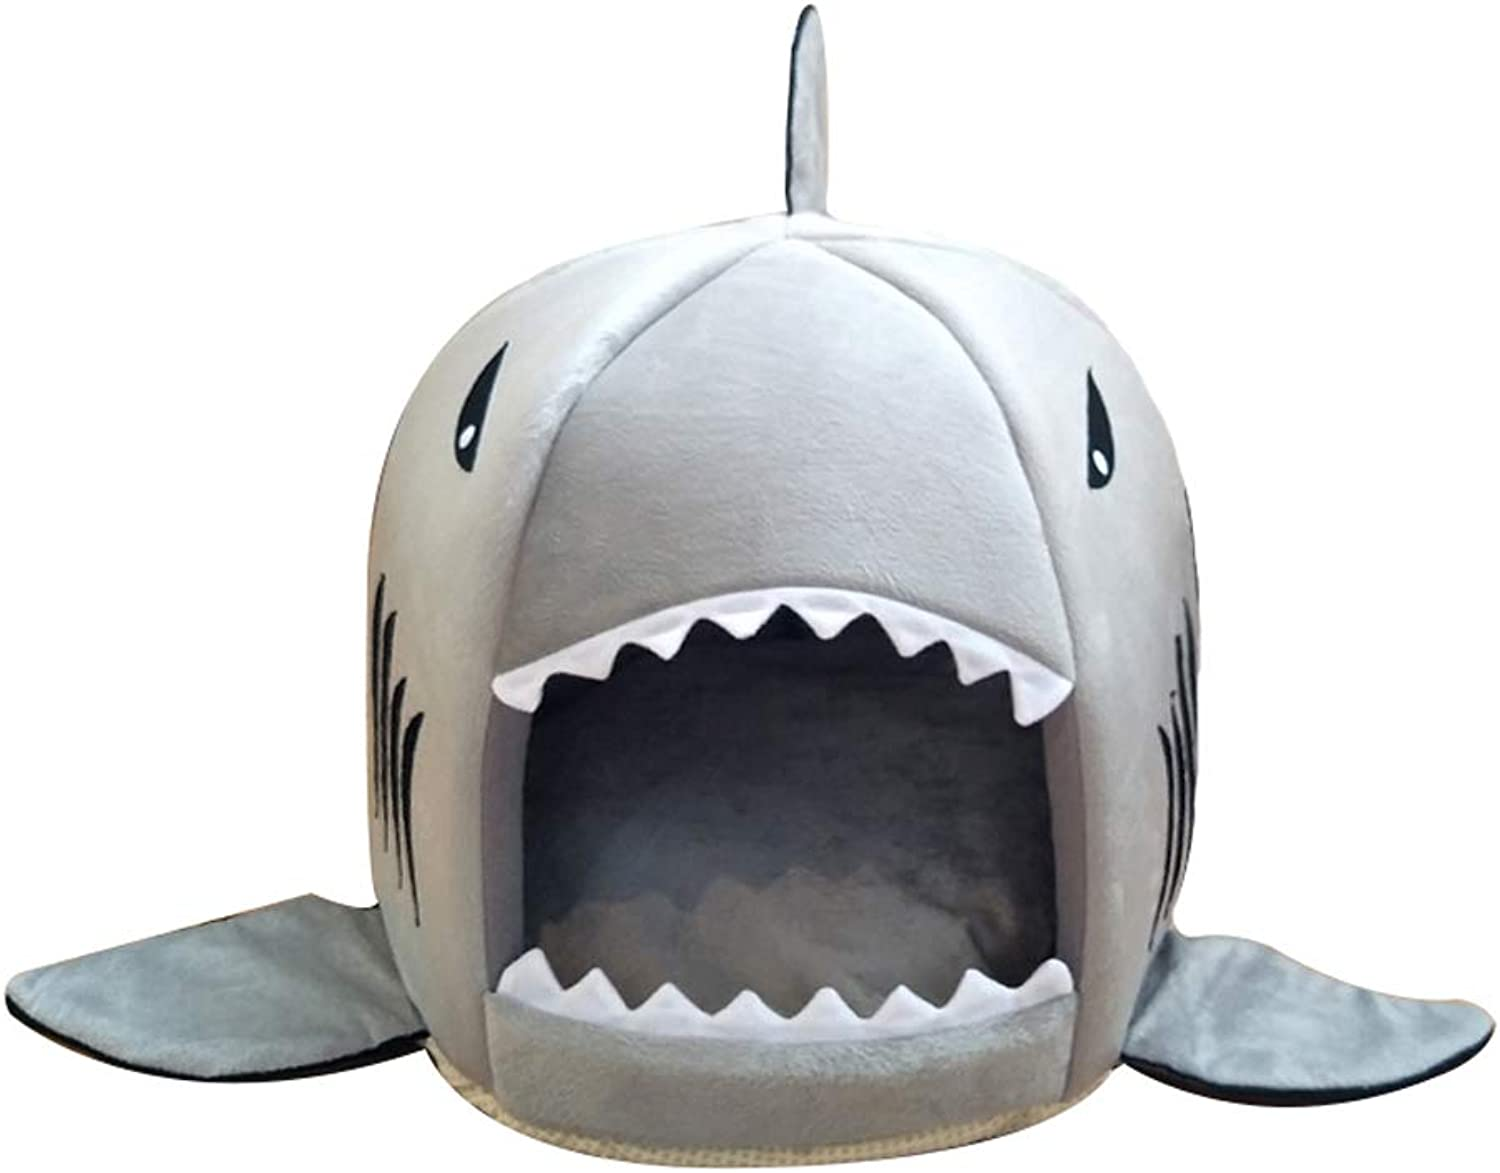 HR Shark Round House Puppy Bed With Pet Bed Mat 3 color 2 Size Optional Soft Cushion Mat Four Seasons Puppy Cave Small Dogs, Puppy, Cats, Rabbit Grey (color   A, Size   M)